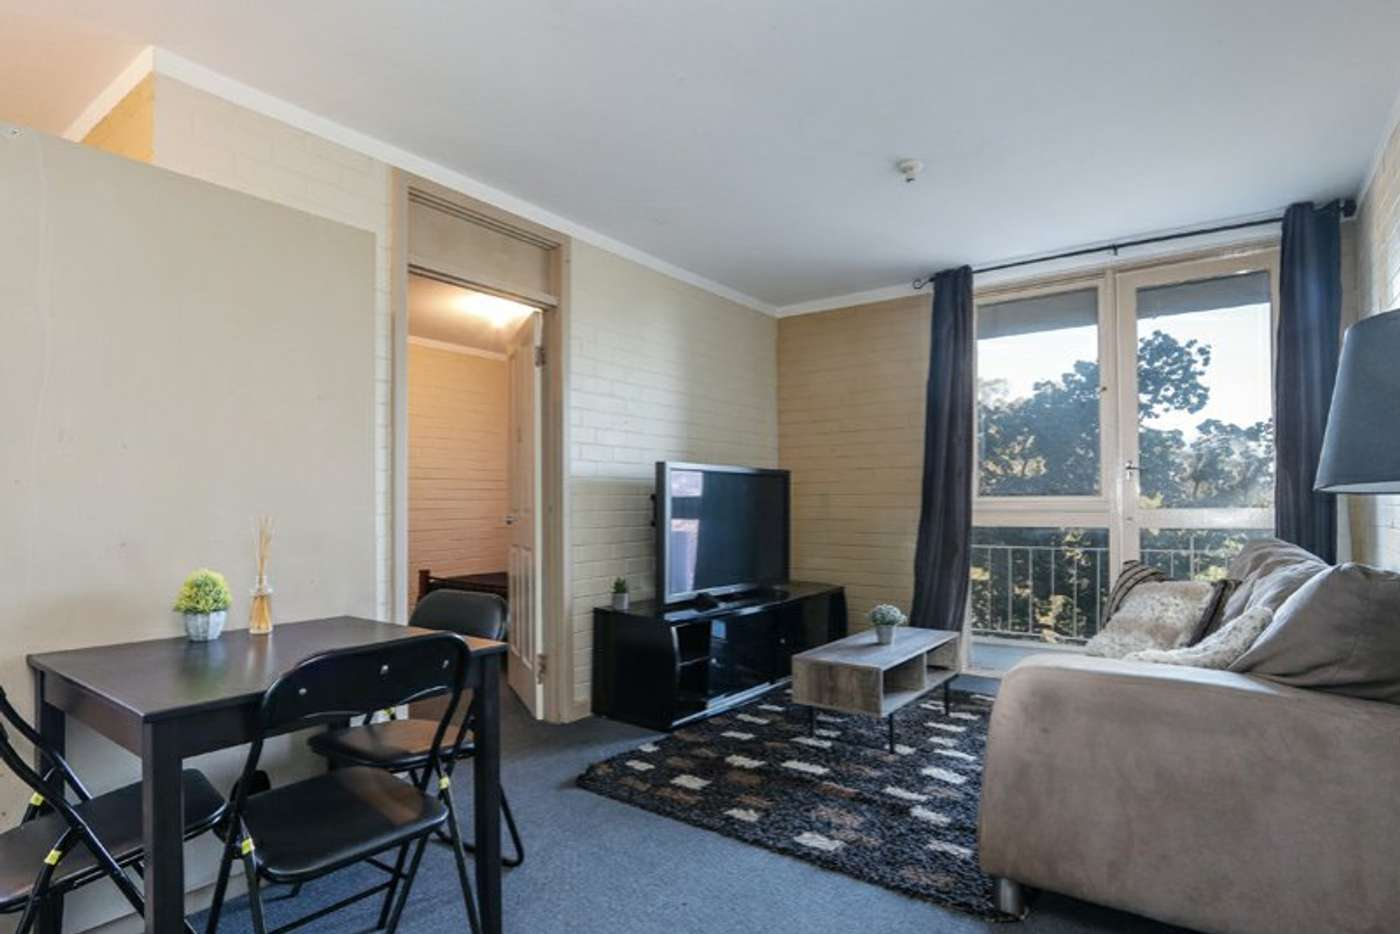 Main view of Homely apartment listing, 31/227 Vincent Street, West Perth WA 6005